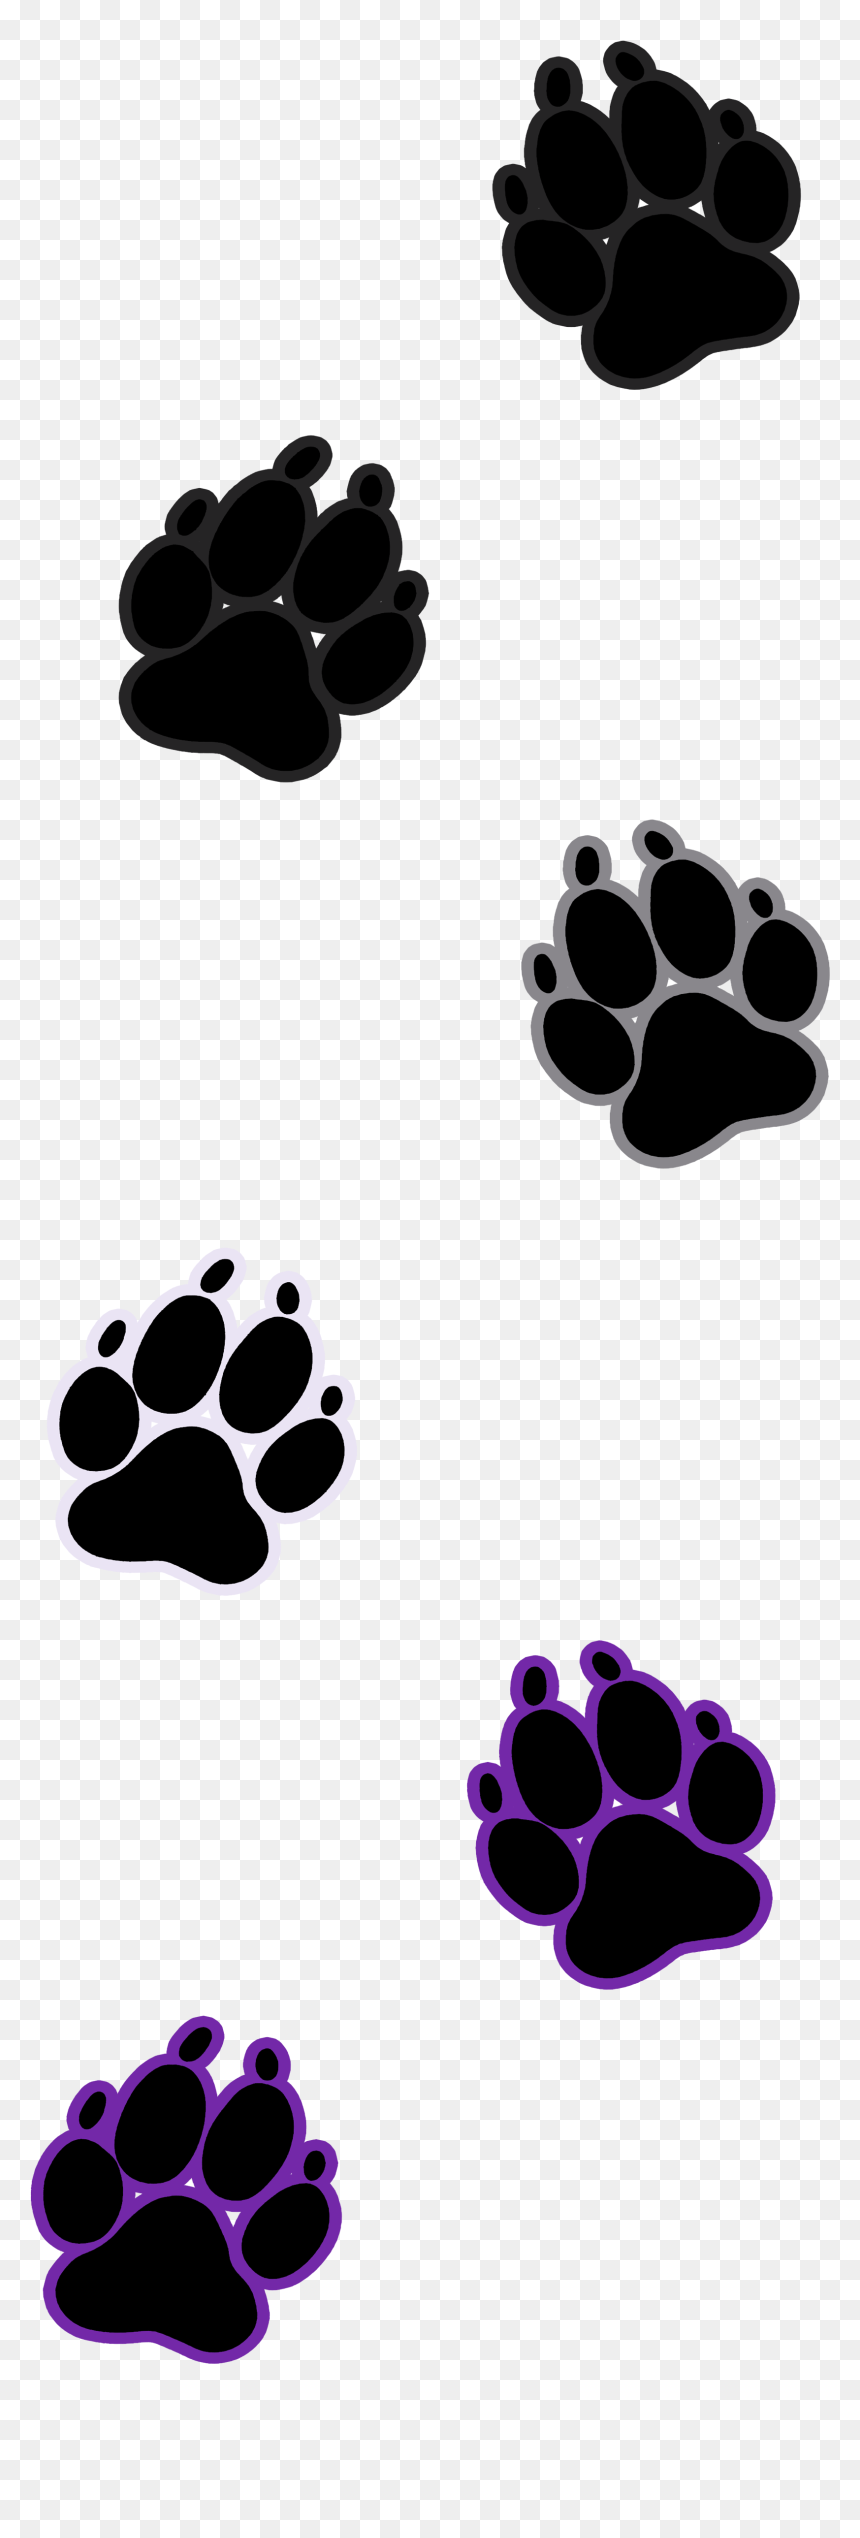 Transparent Dog Paw Outline Clipart Paw Prints Transparent Background Free Hd Png Download 1625x4721 Png Dlf Pt Please wait while your url is generating. dlf pt